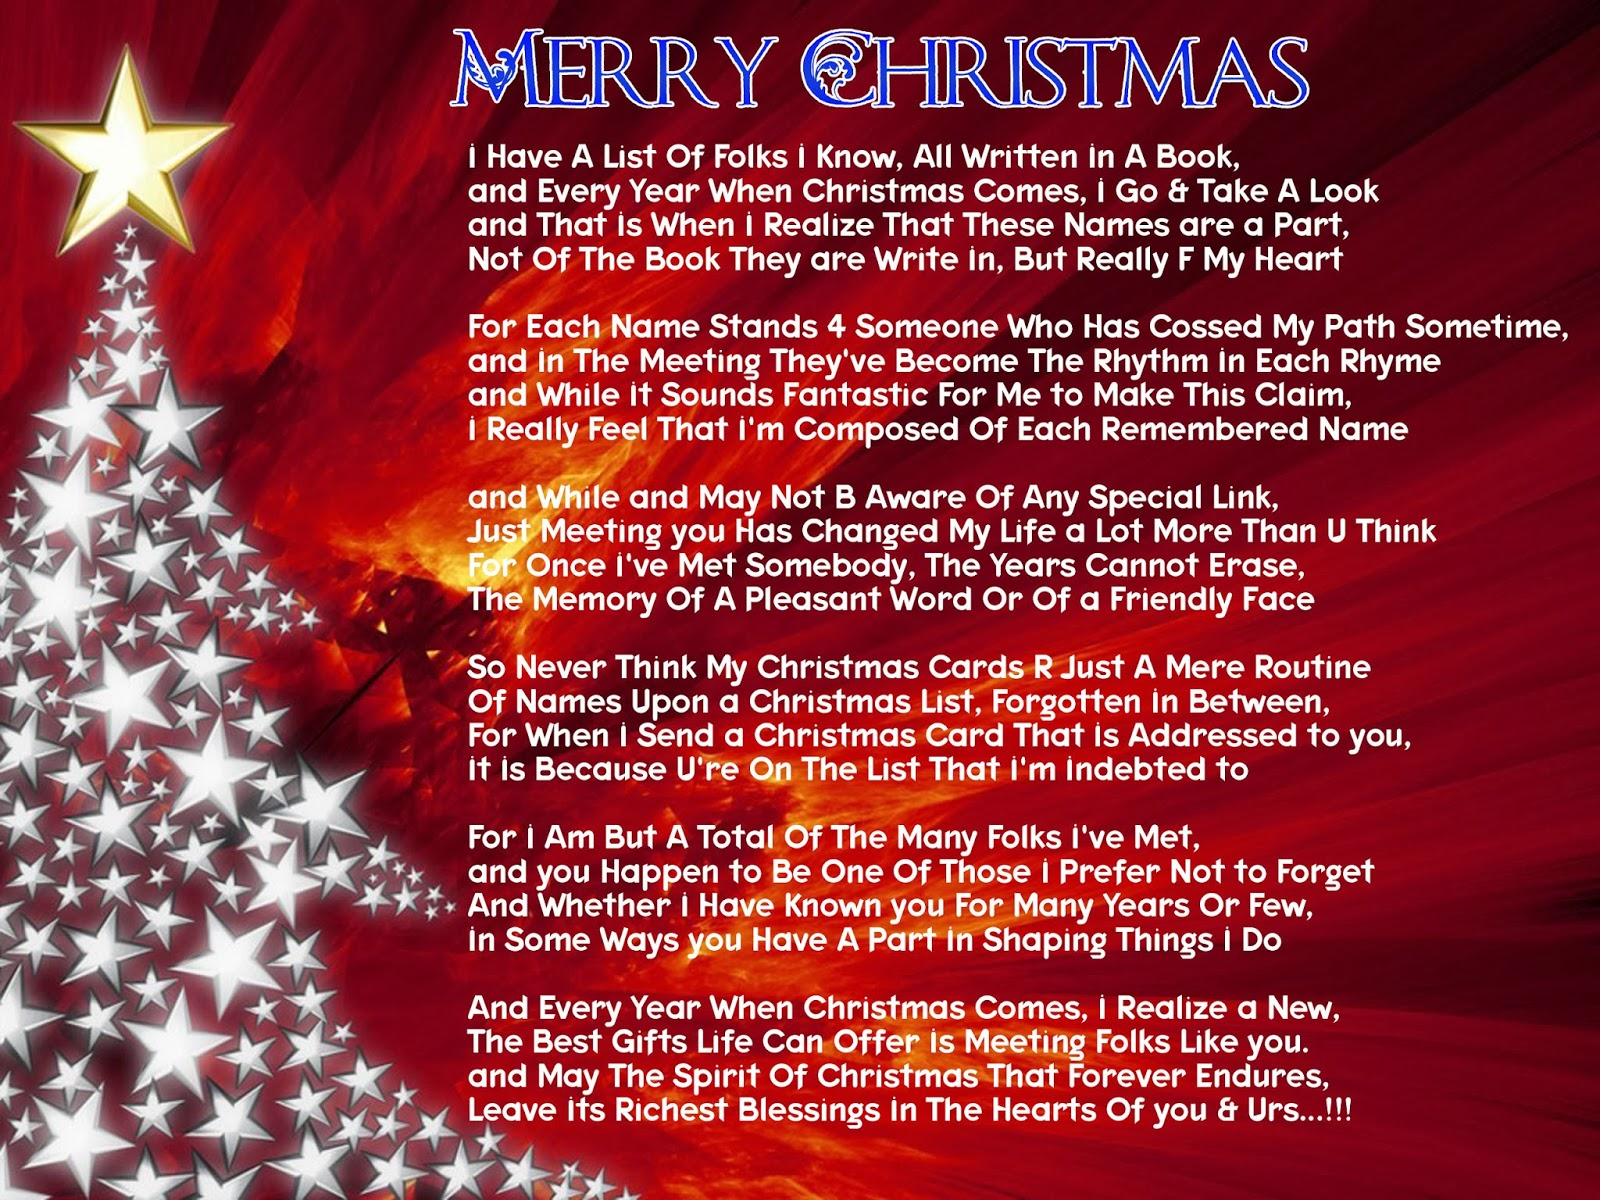 Christmas Quotes About Friendship Merry Christmas Friendship Poems